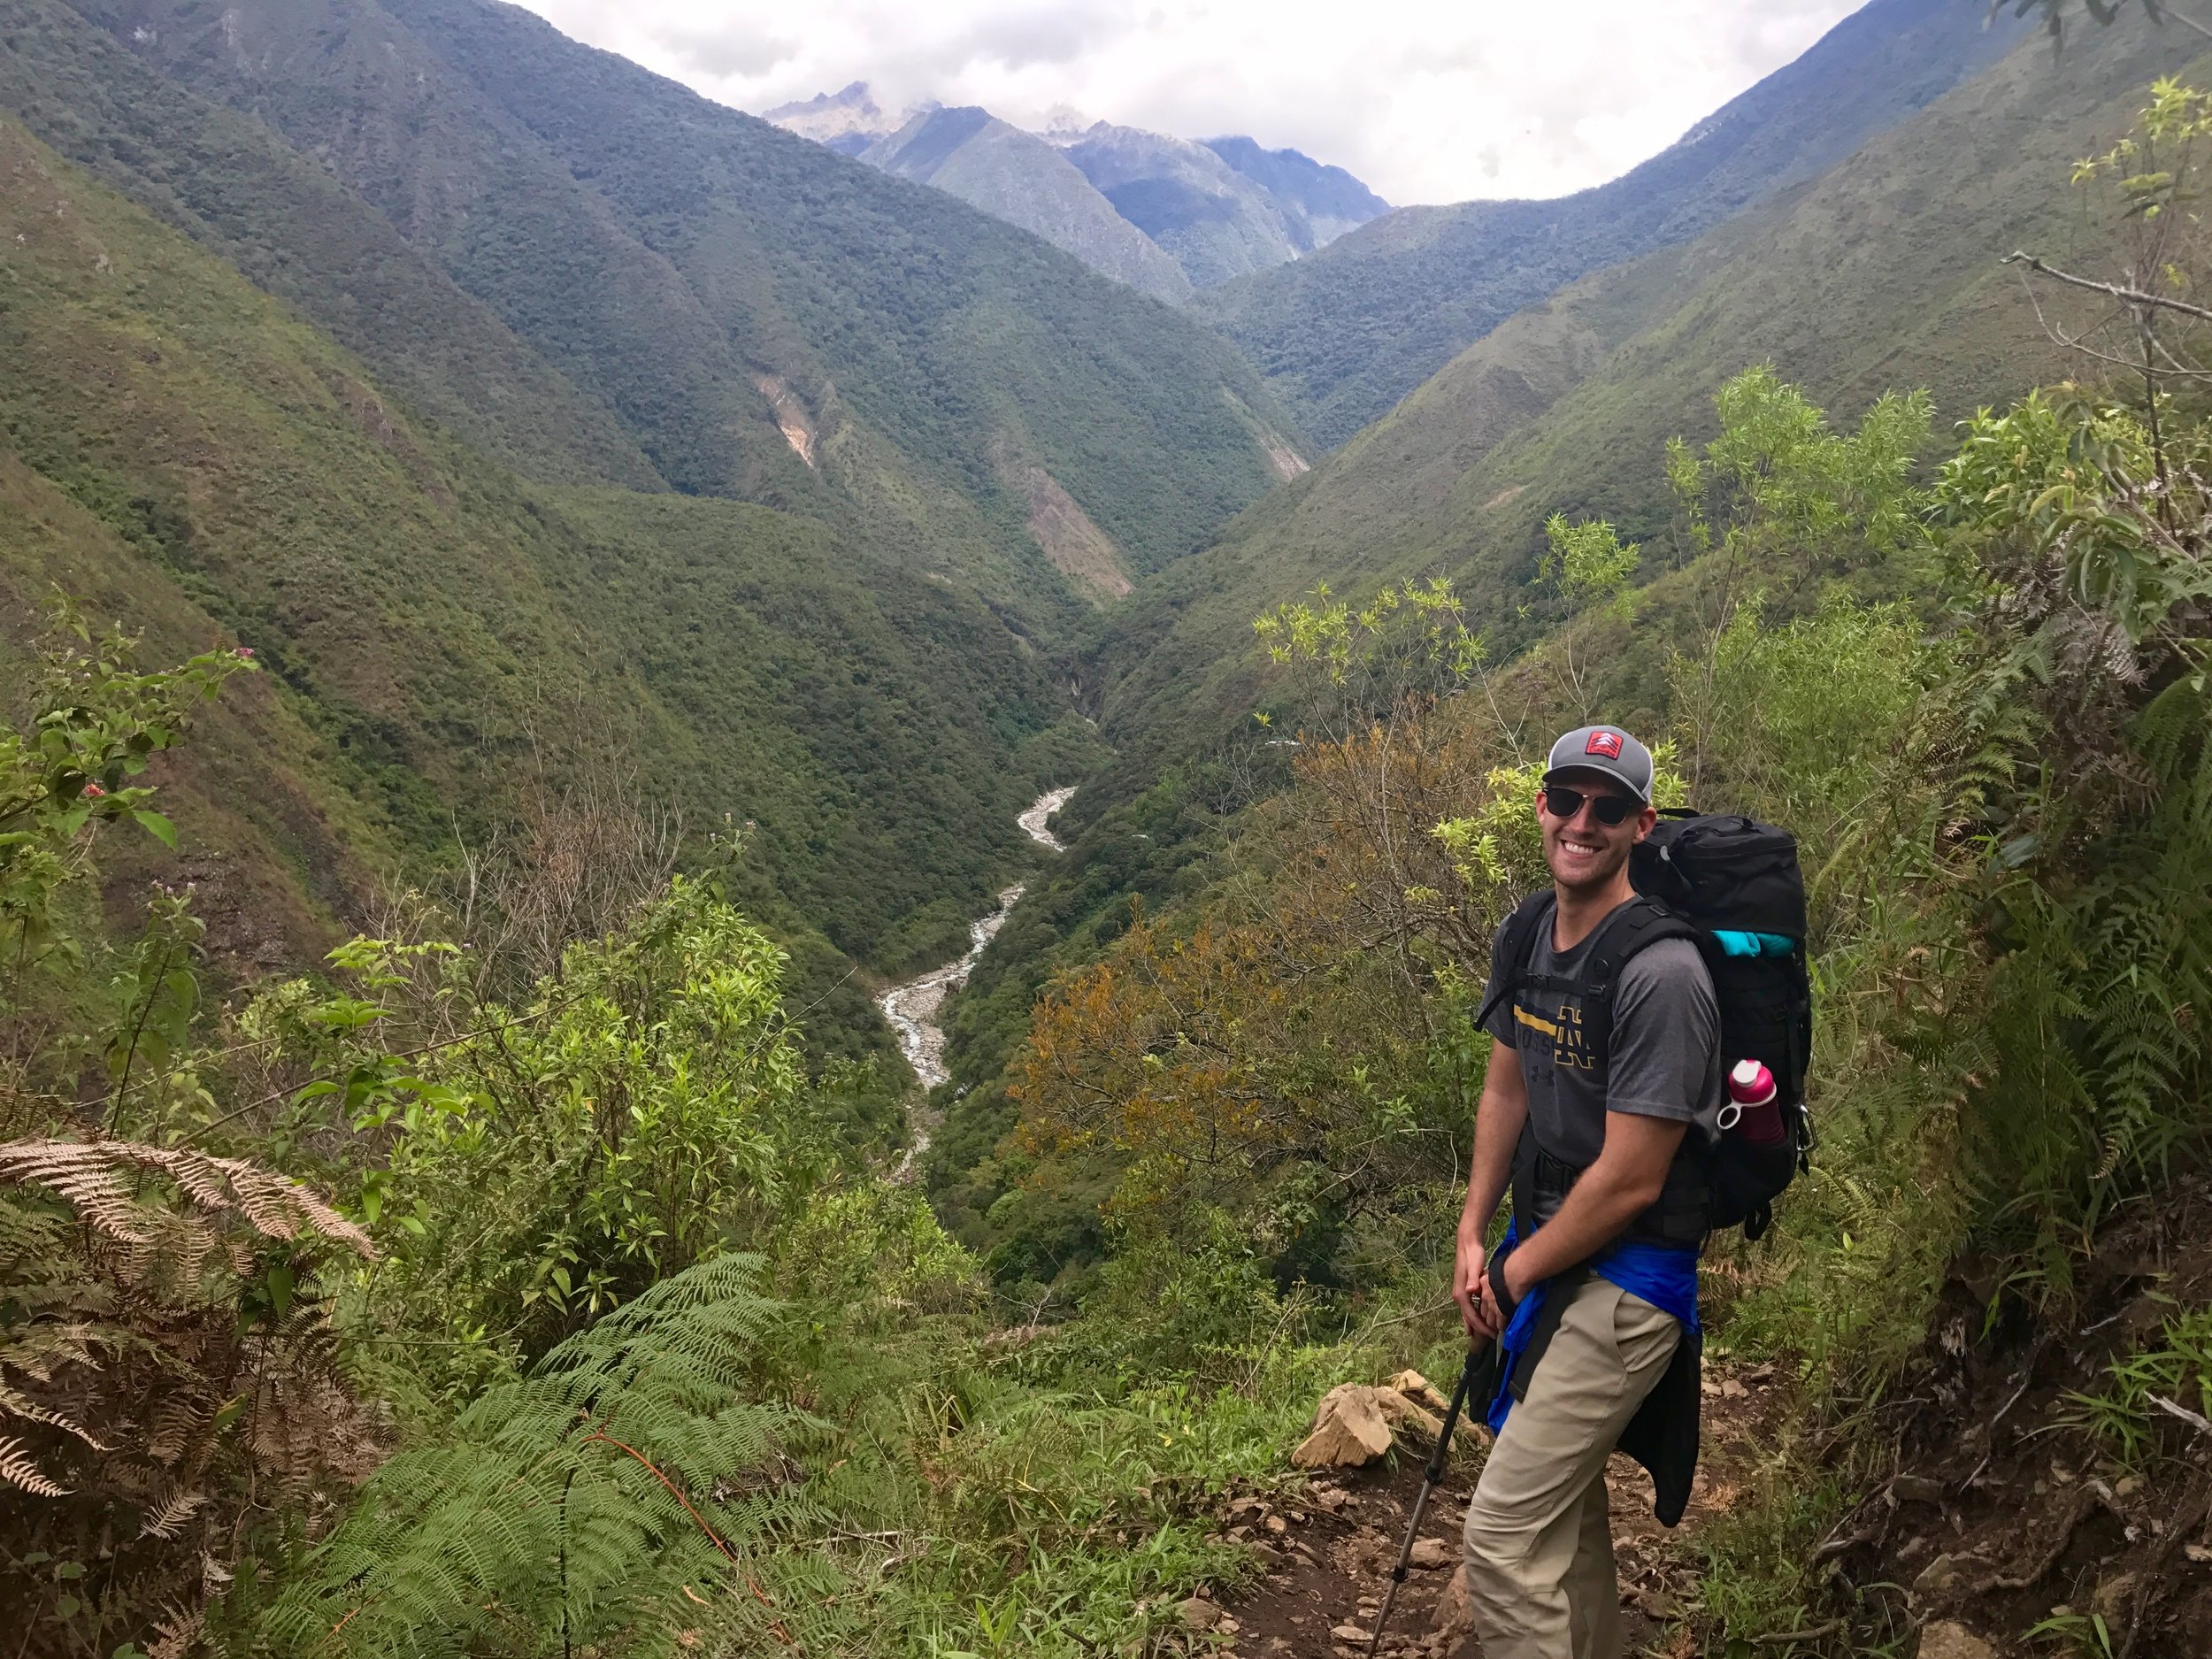 Descending down the Llactapata trail, Salkantay Trek, Peru 2017